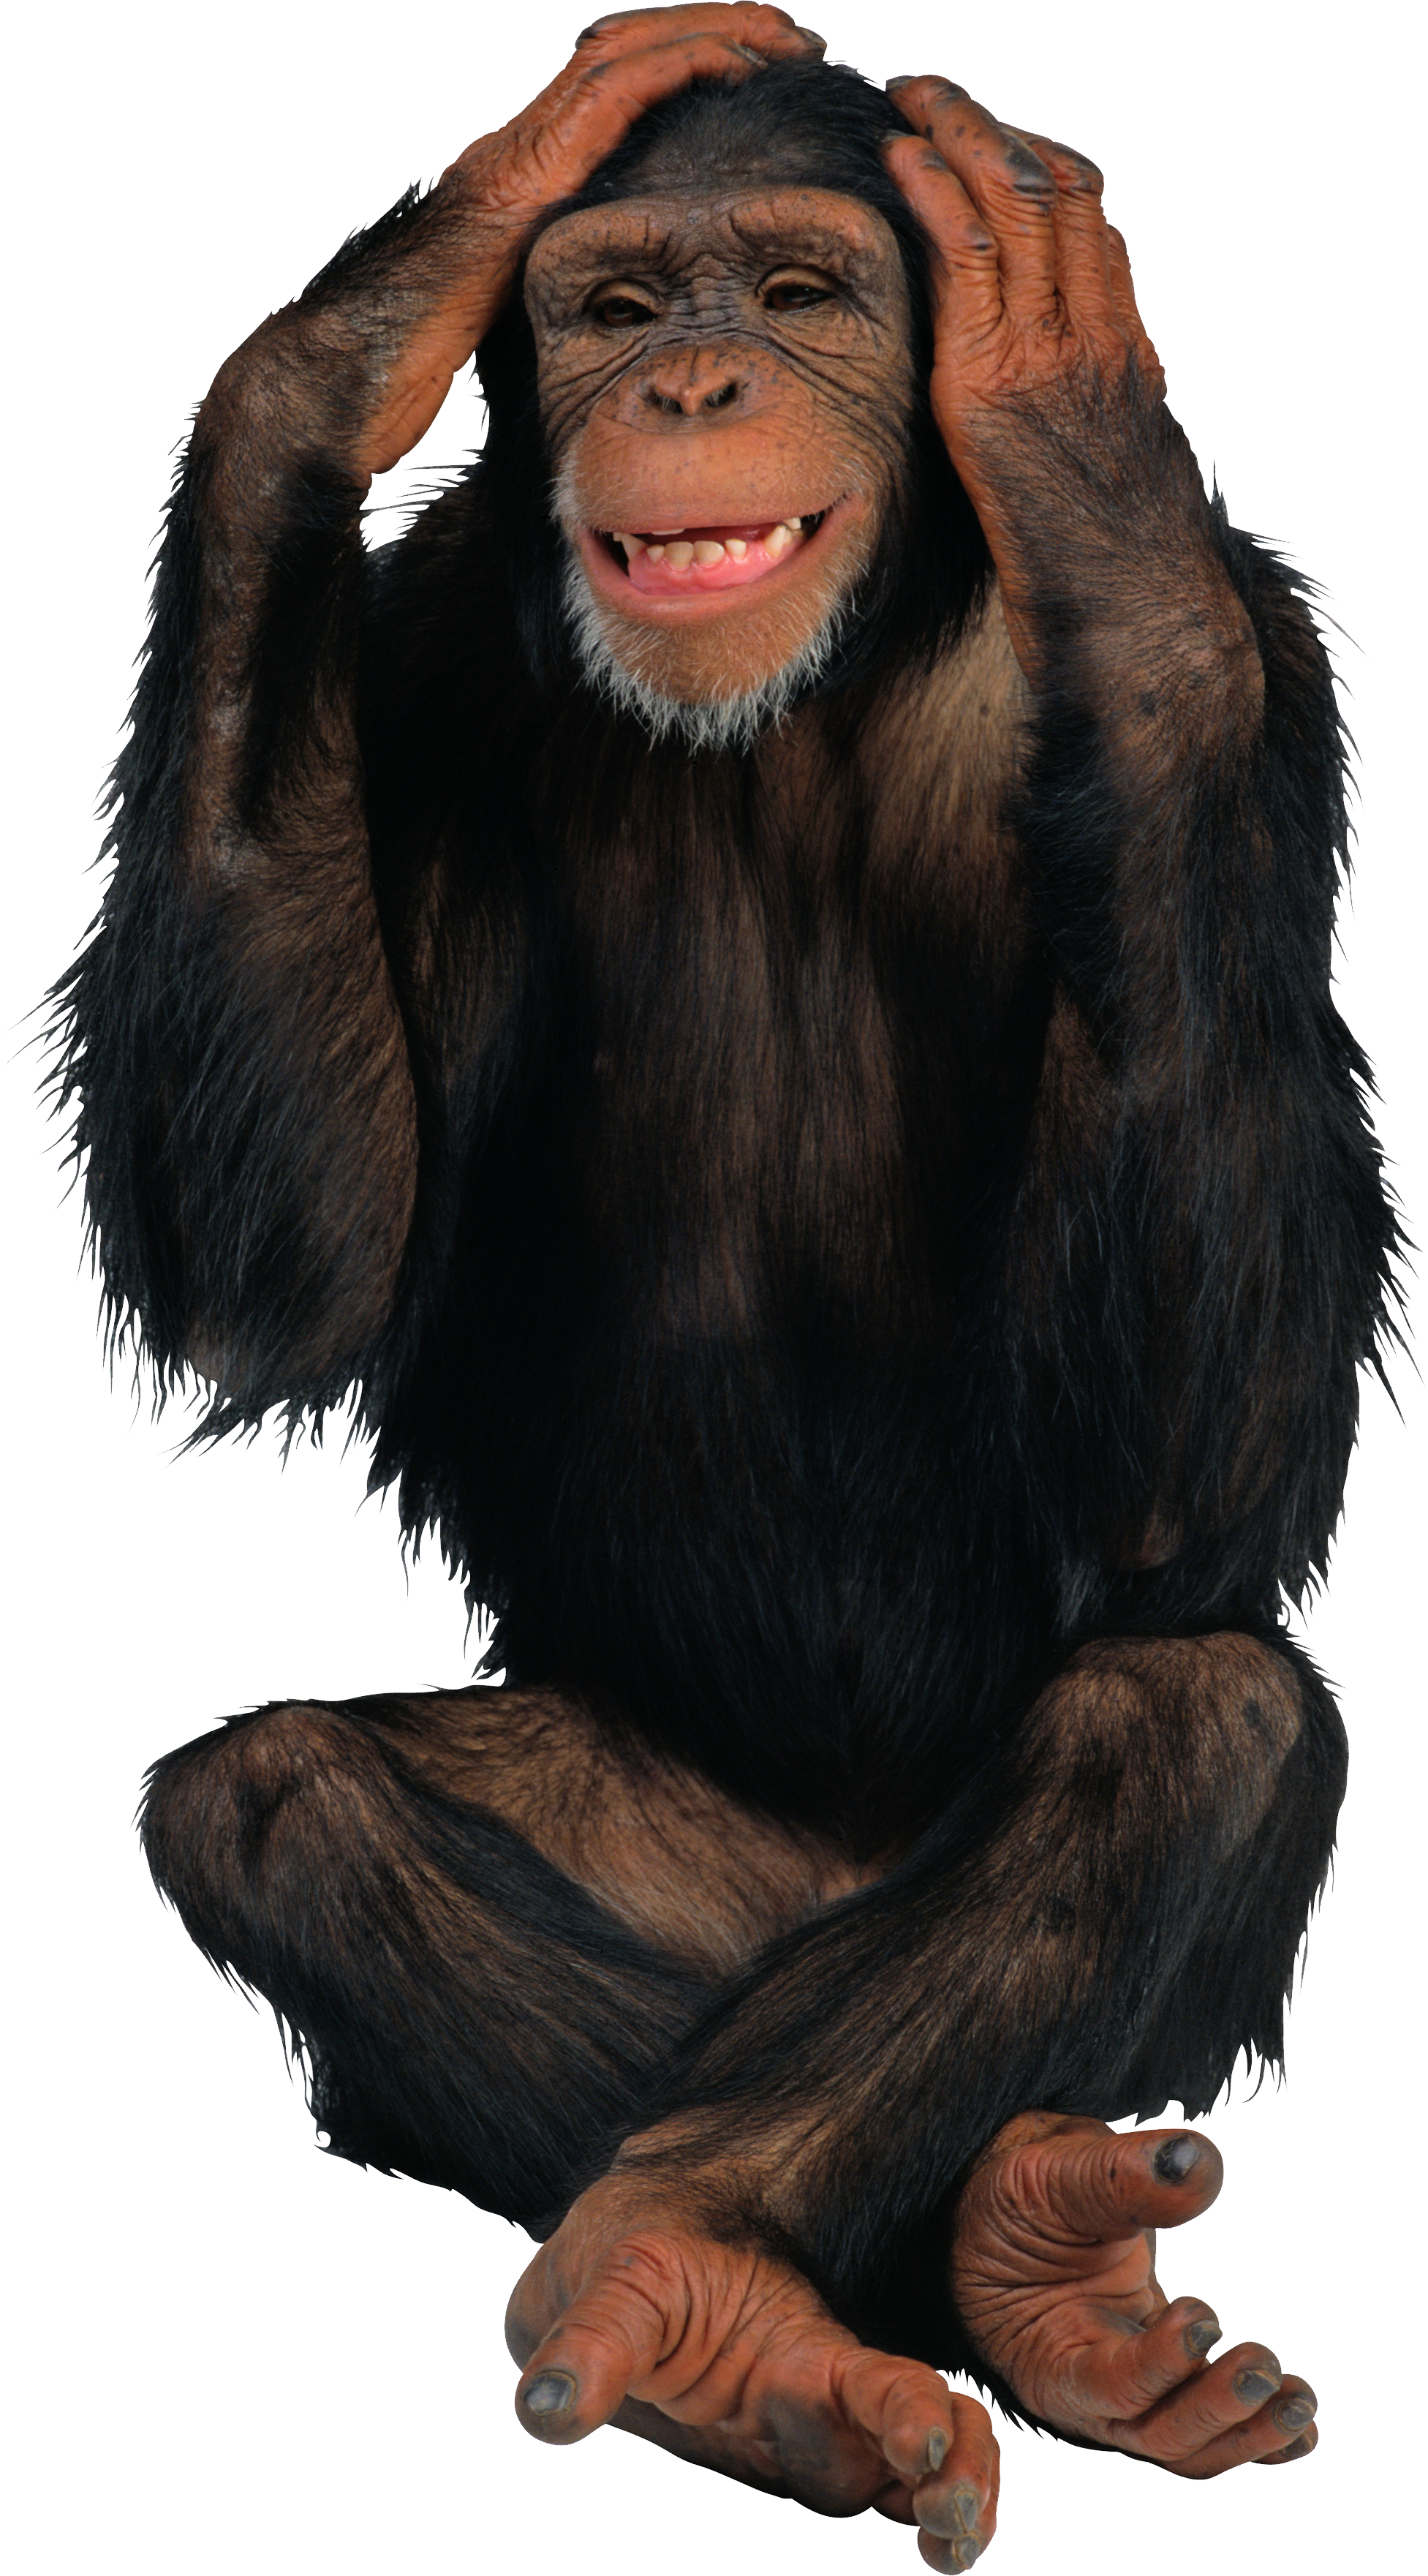 Animal pinterest. Monkey png images picture free download